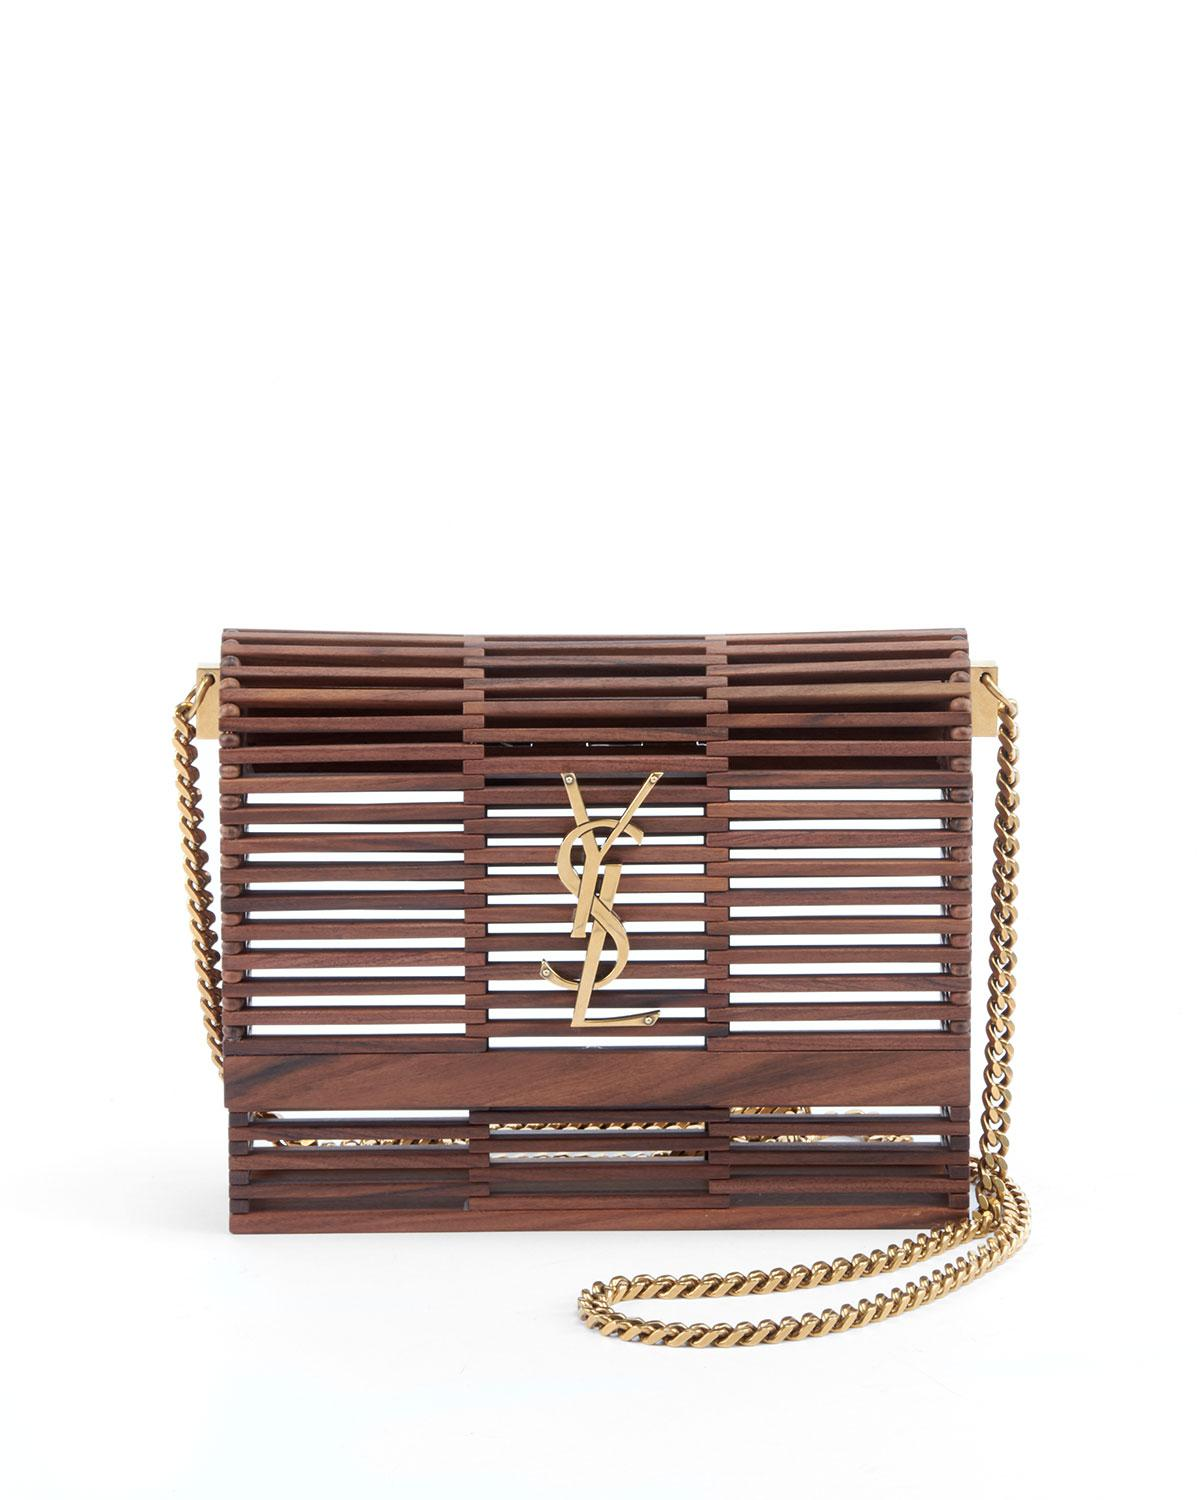 Lyst - Saint Laurent Small Kate Wooden Weave Box Bag in Brown 22e9e5a939c0a